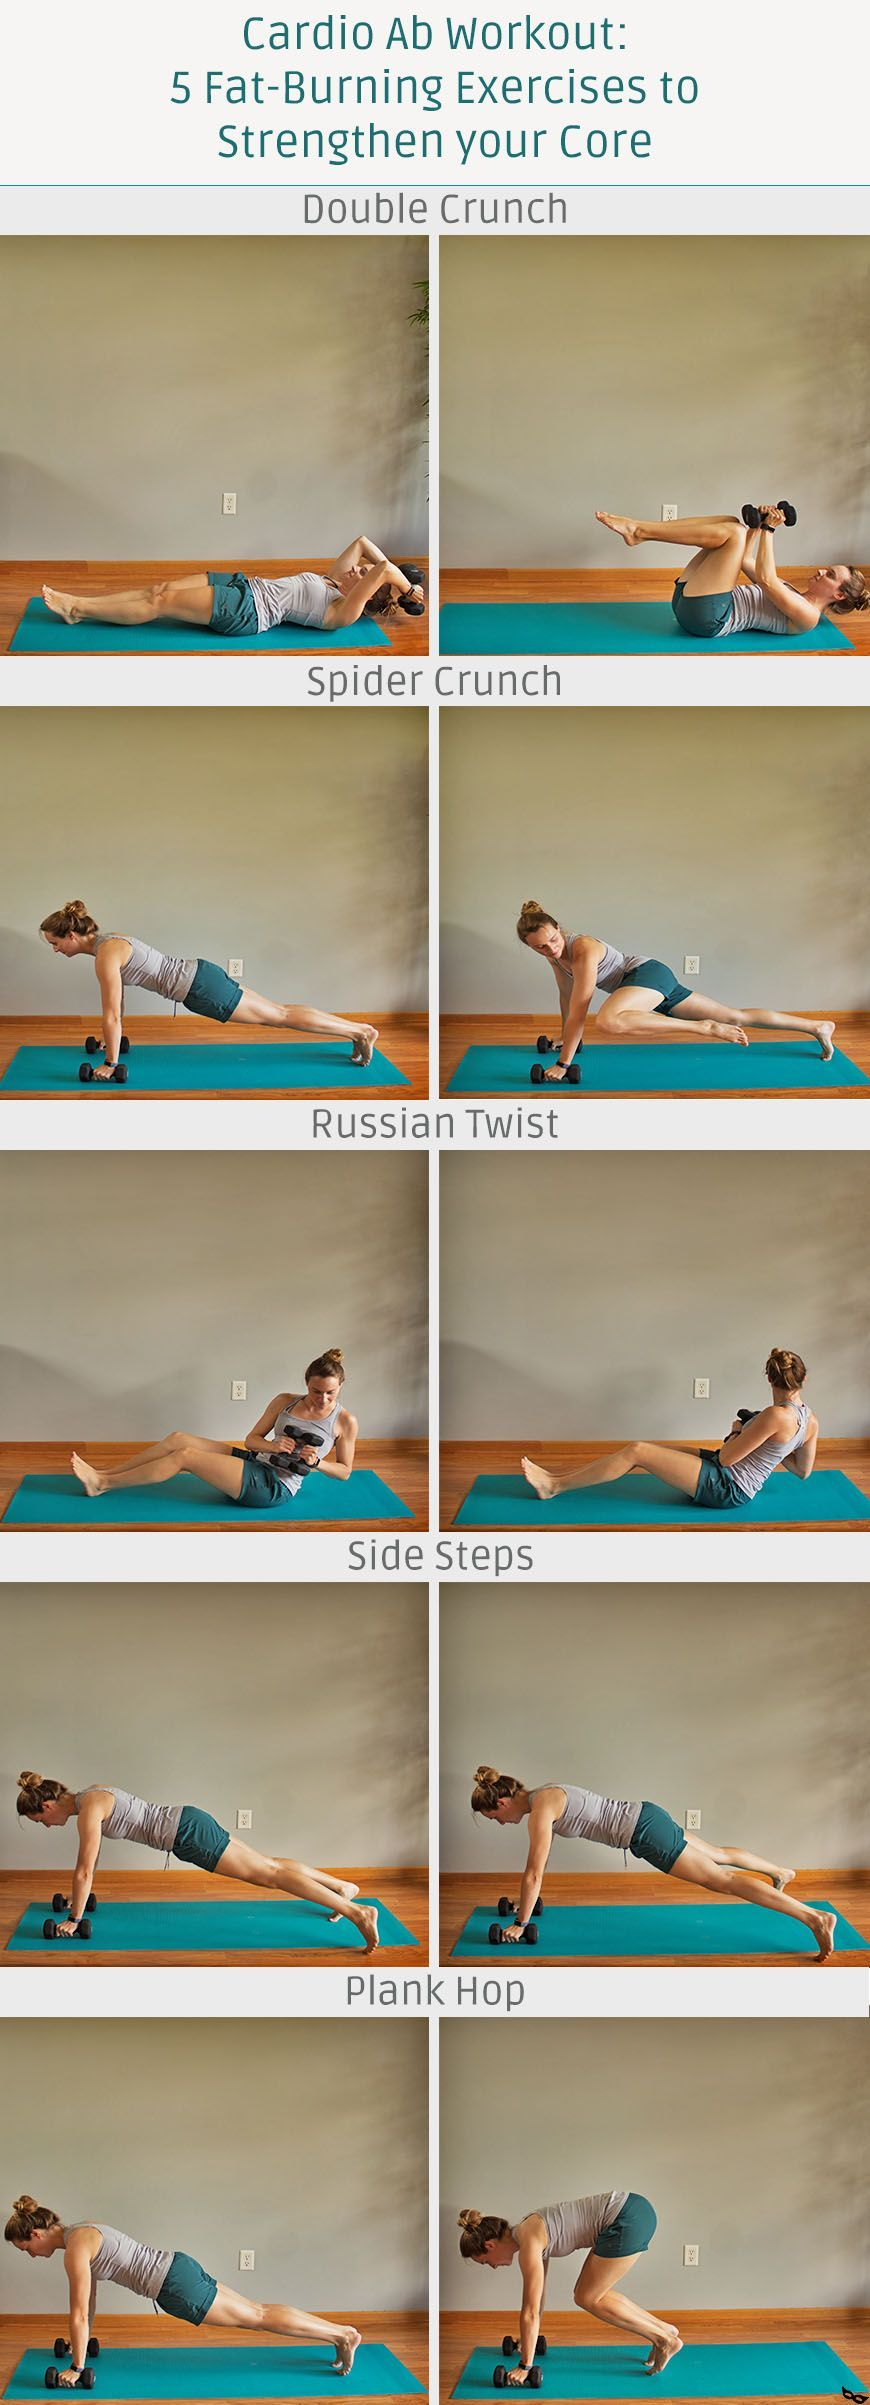 All you need is a set of dumbbells for this cardio ab workout! Ab workouts at home are a great way t...